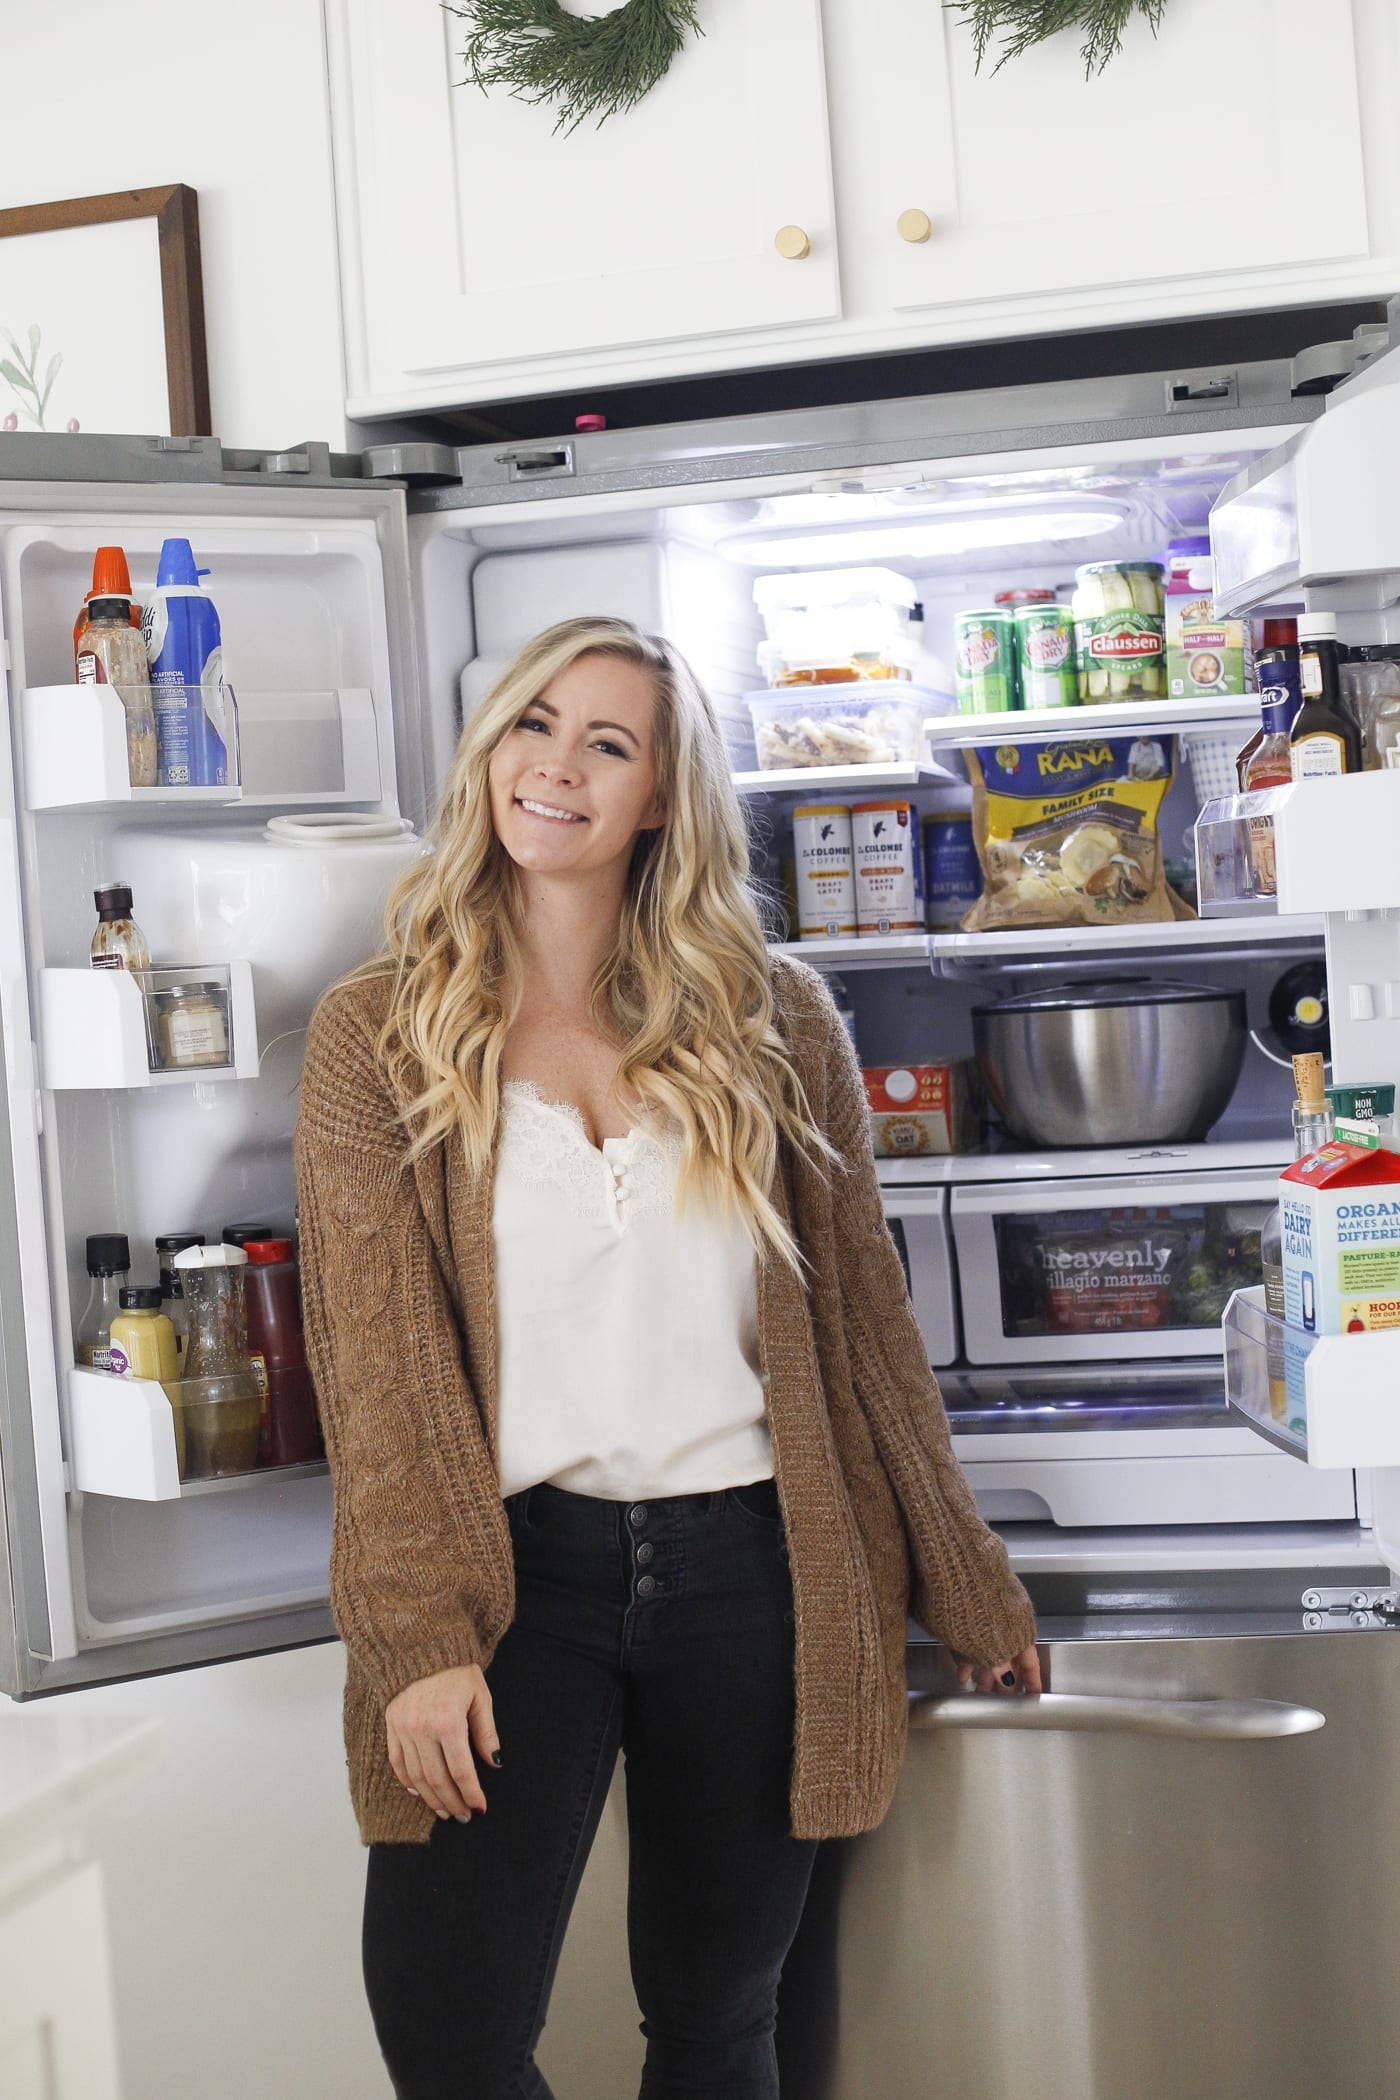 Groceries Delivered to Your Fridge with Walmart InHome